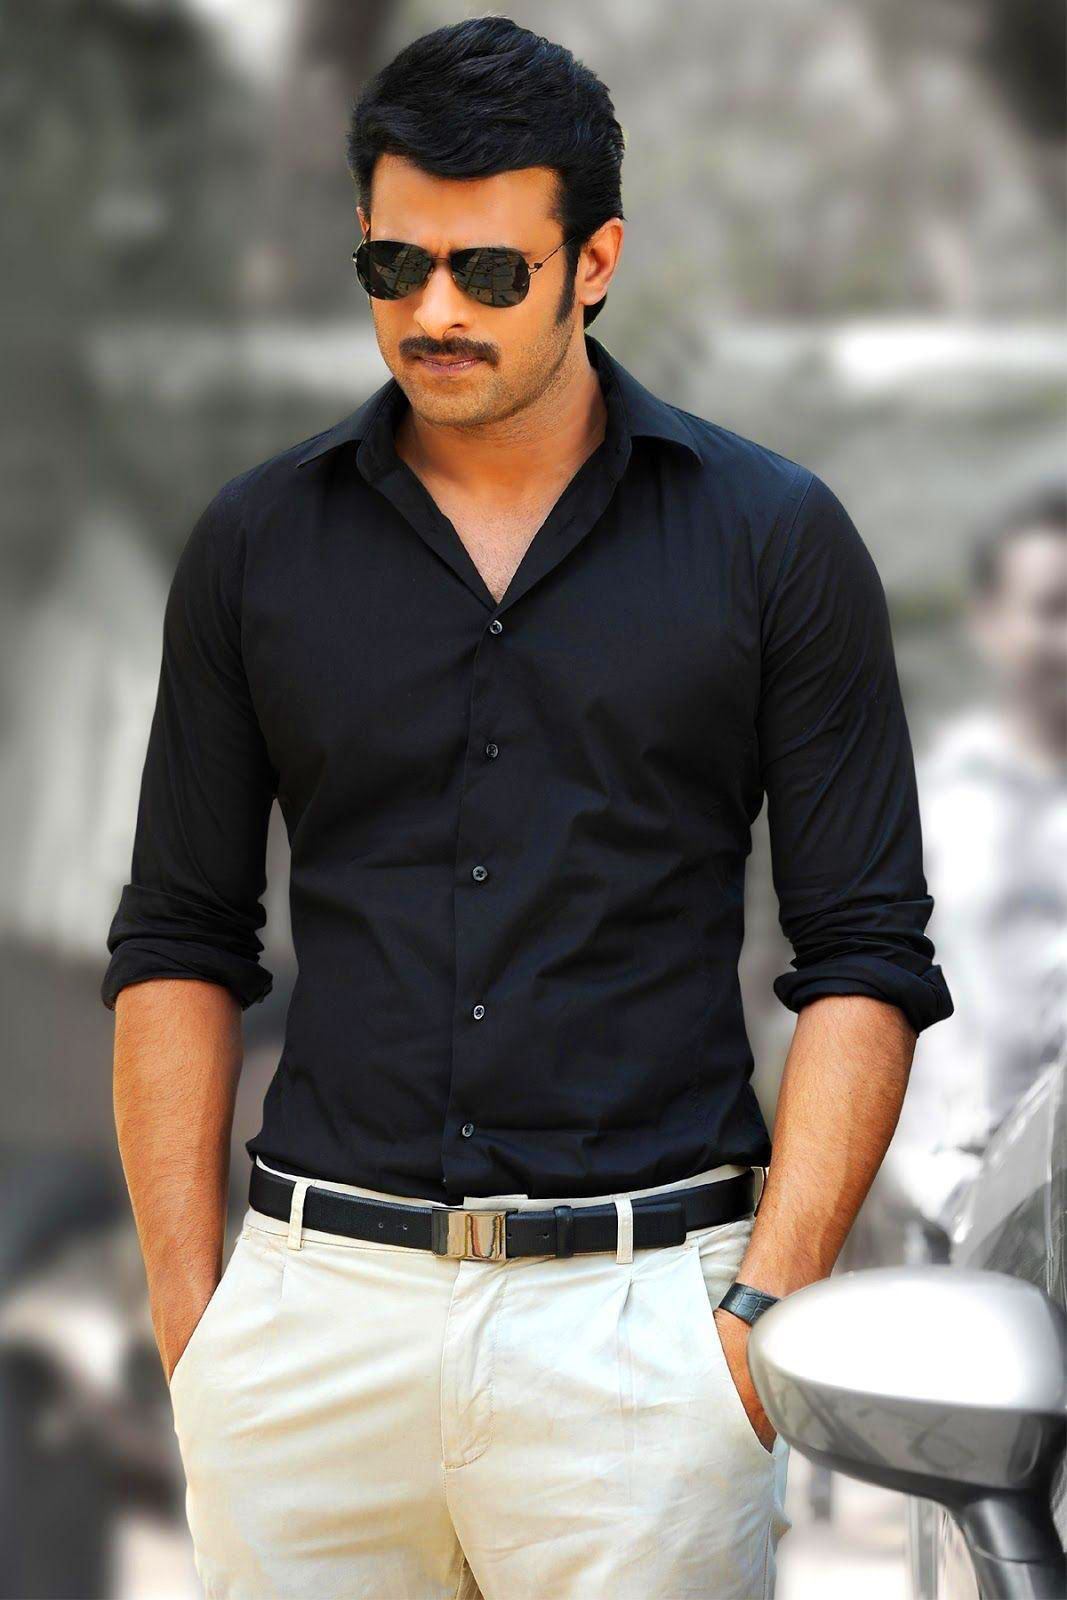 Latest Superstar Prabhas Images pictures free hd